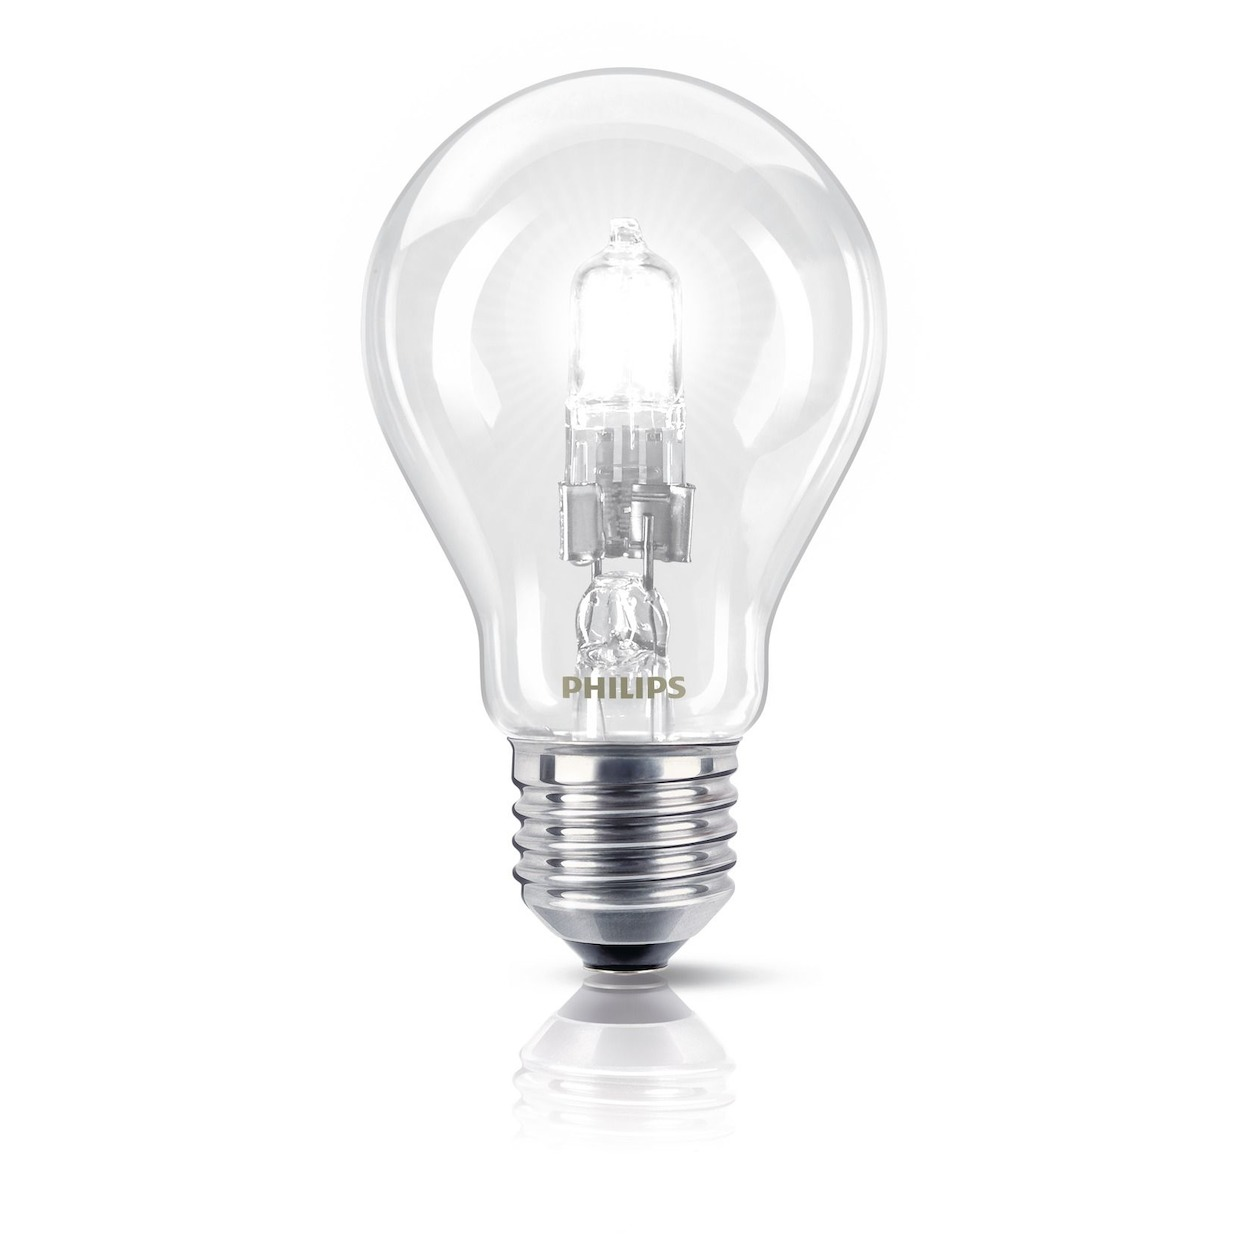 Philips halogeenlamp E27 42W 630Lm classic